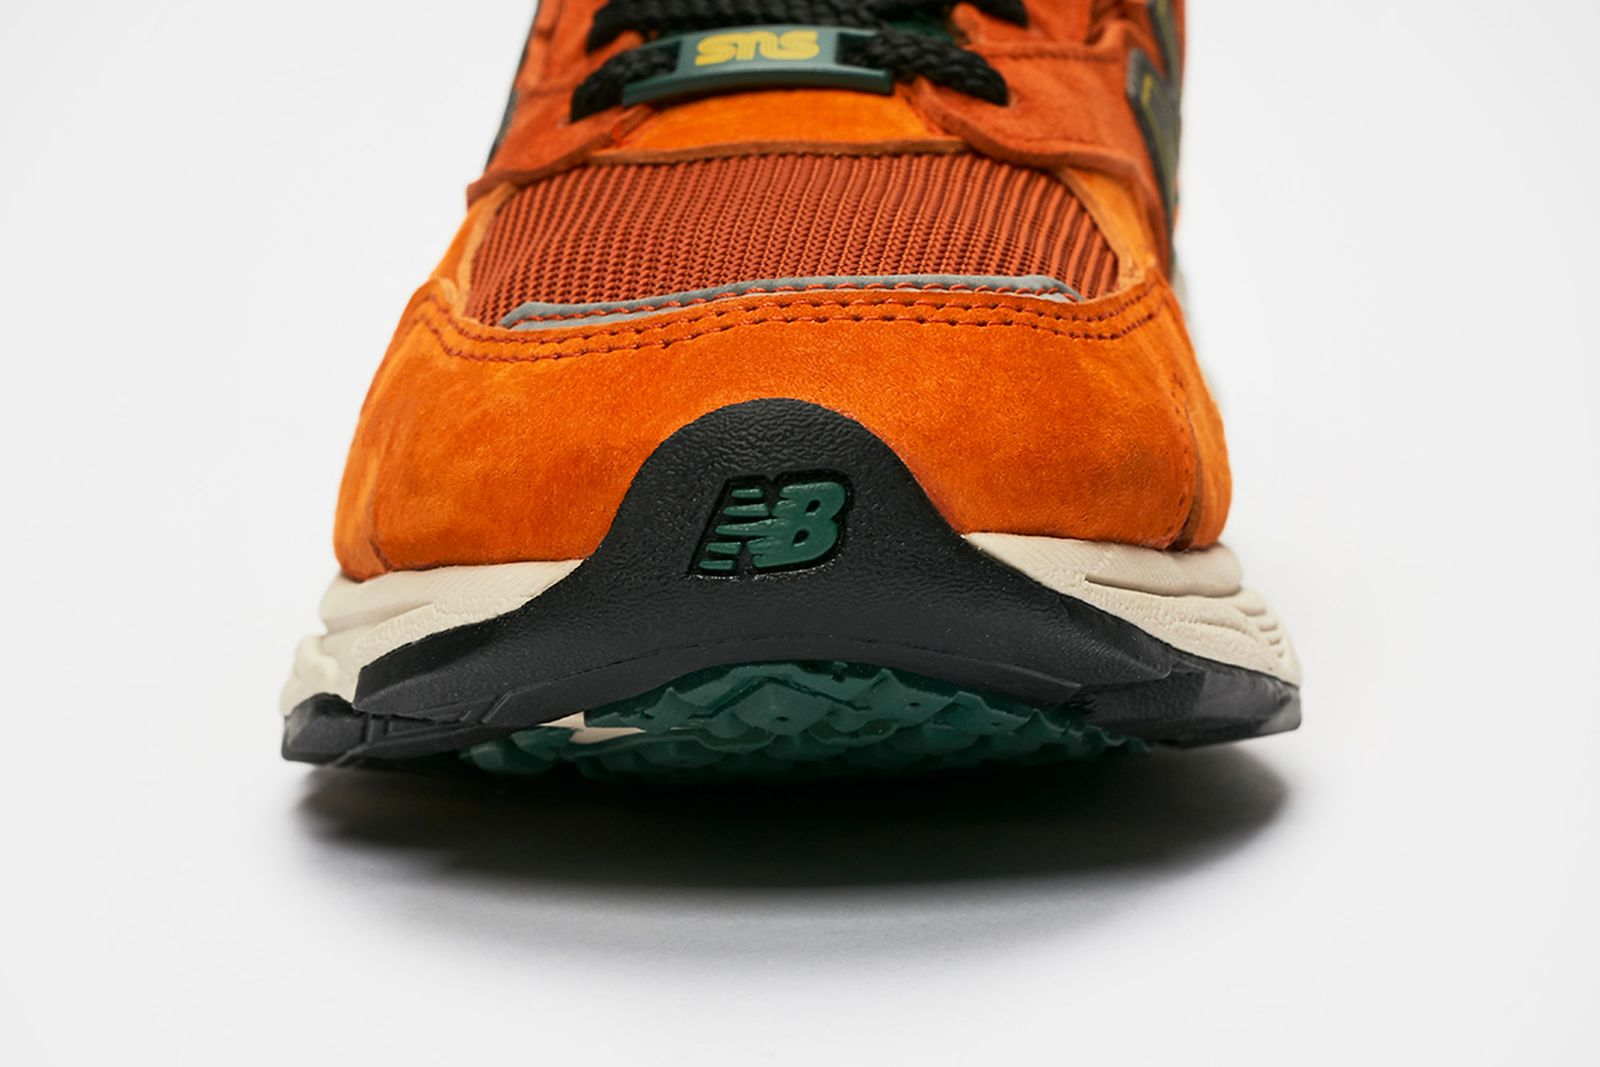 sns-new-balance-920-release-date-price-04